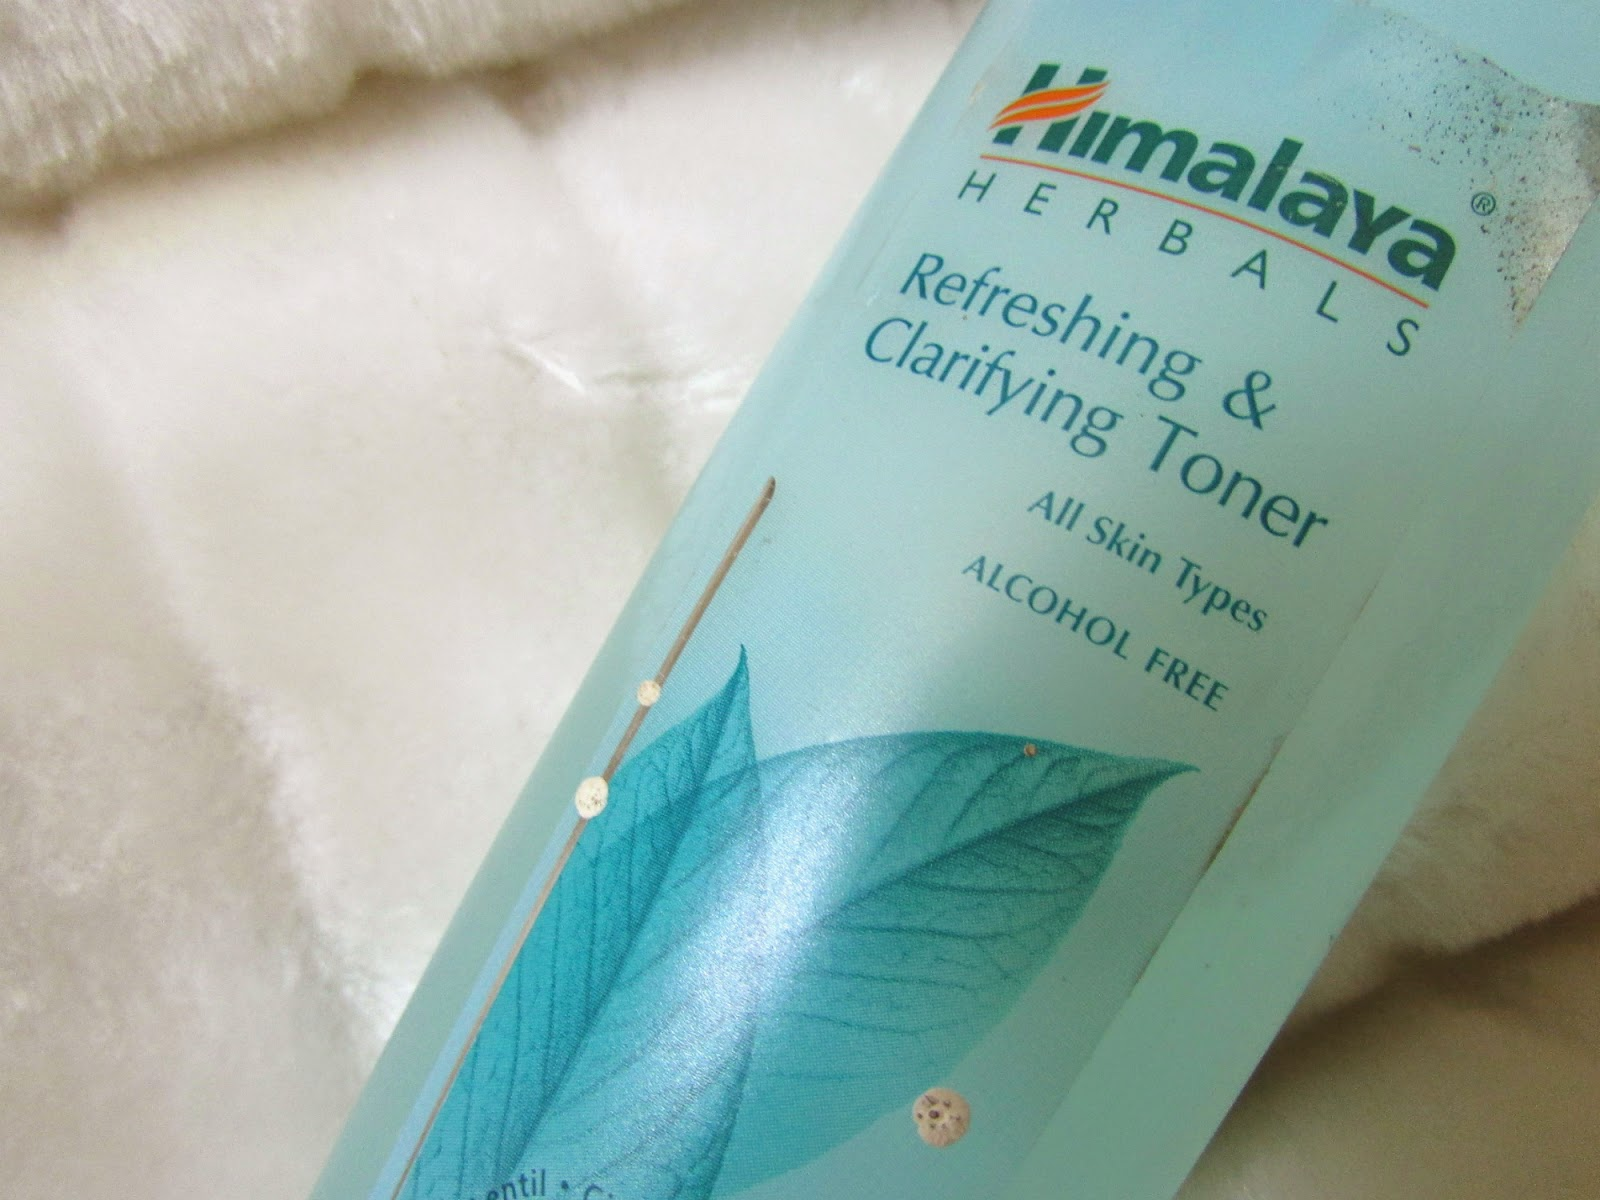 Himalaya toner, Himalaya refreshing and clarifying toner, Himalaya refreshing and clarifying toner review, Himalaya refreshing and clarifying toner price, Himalaya refreshing and clarifying toner review and price, Himalaya refreshing and clarifying toner India, Himalaya refreshing and clarifying toner online, Himalaya refreshing and clarifying toner india online, Himalaya refreshing and clarifying toner price india, Himalaya refreshing and clarifying toner review india, Himalaya refreshing and clarifying toner , Himalaya refreshing and clarifying toner price and review india, Himalaya refreshing and clarifying toner for all skin types, toner for all skin types, alcohol free toners, Himalaya refreshing and clarifying alcohol free toner, why to use Toner, how to use toner, toner for dry skin, toner for oily skin, toner for normal skin